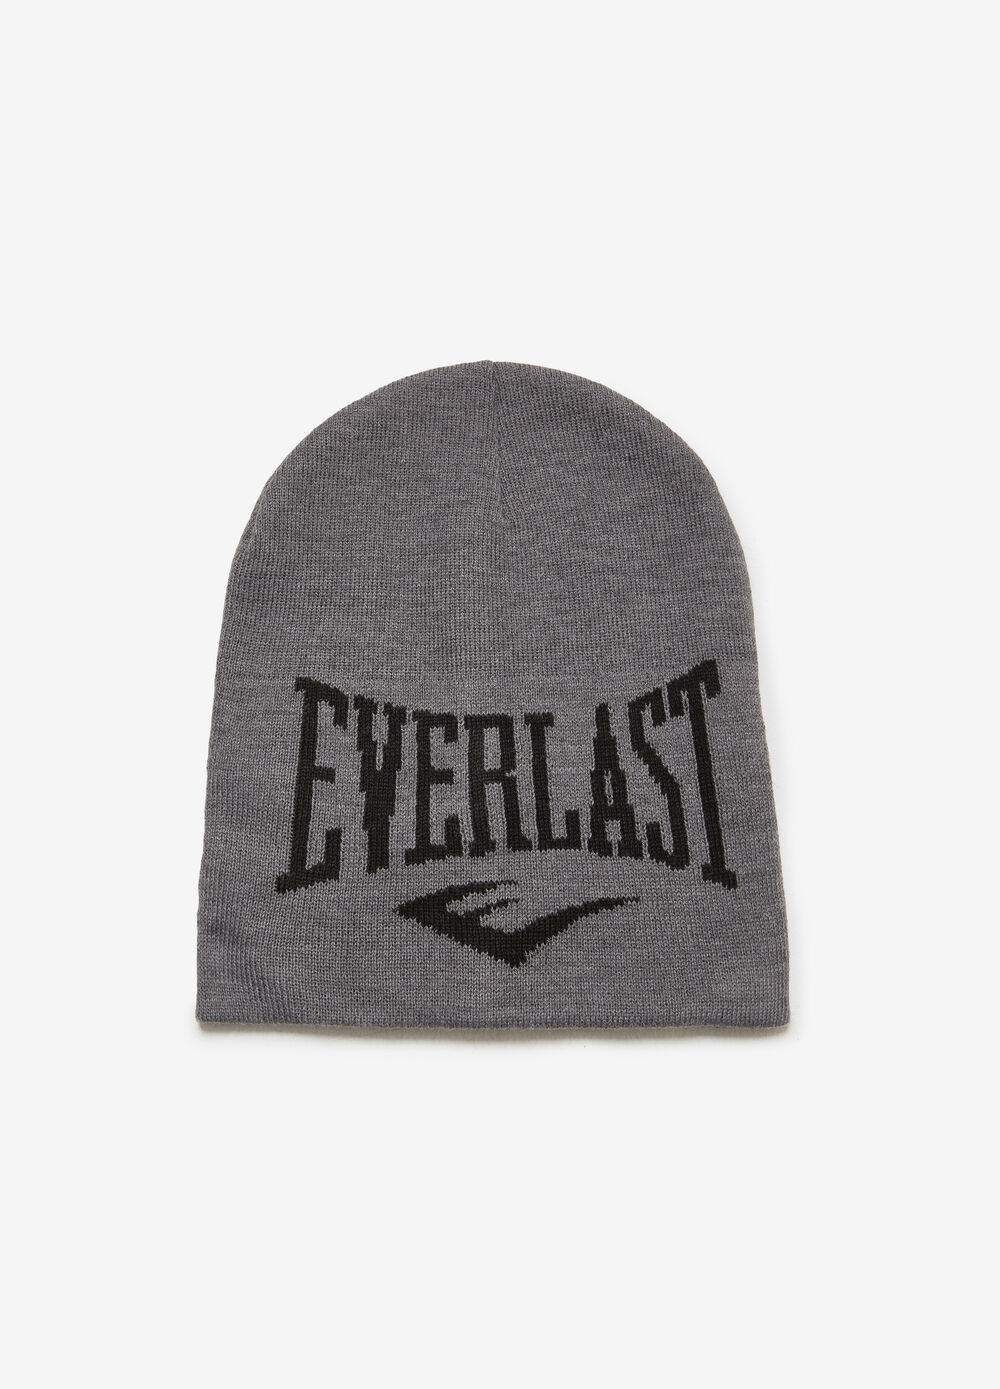 Knitted jacquard hat with Everlast embroidery